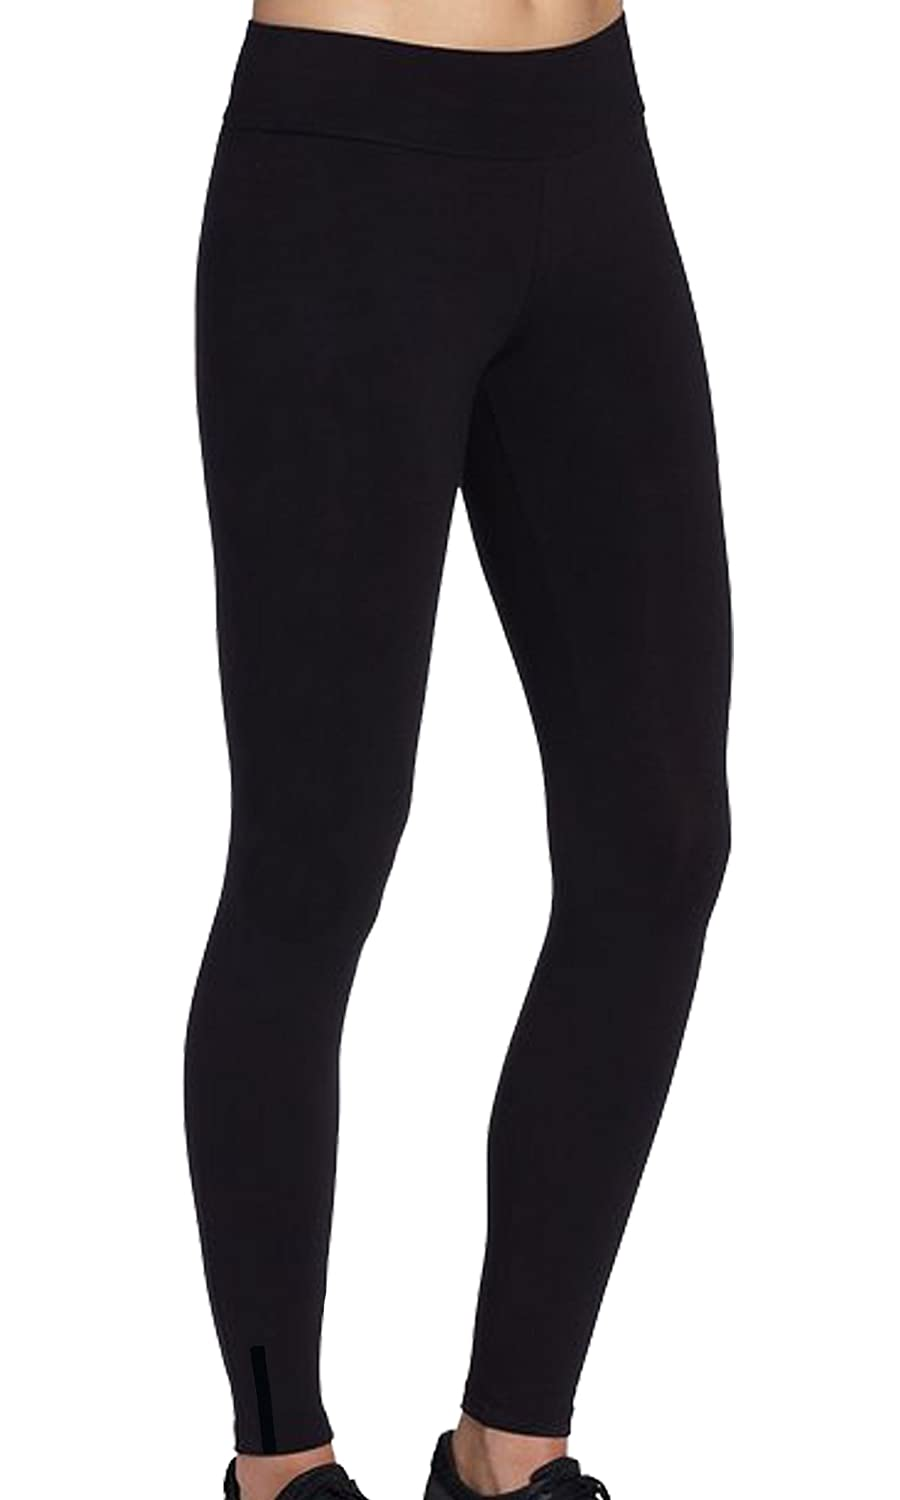 Amazon.com: iLoveSIA Womens Running Leggings Yoga Pants (Clearance ...